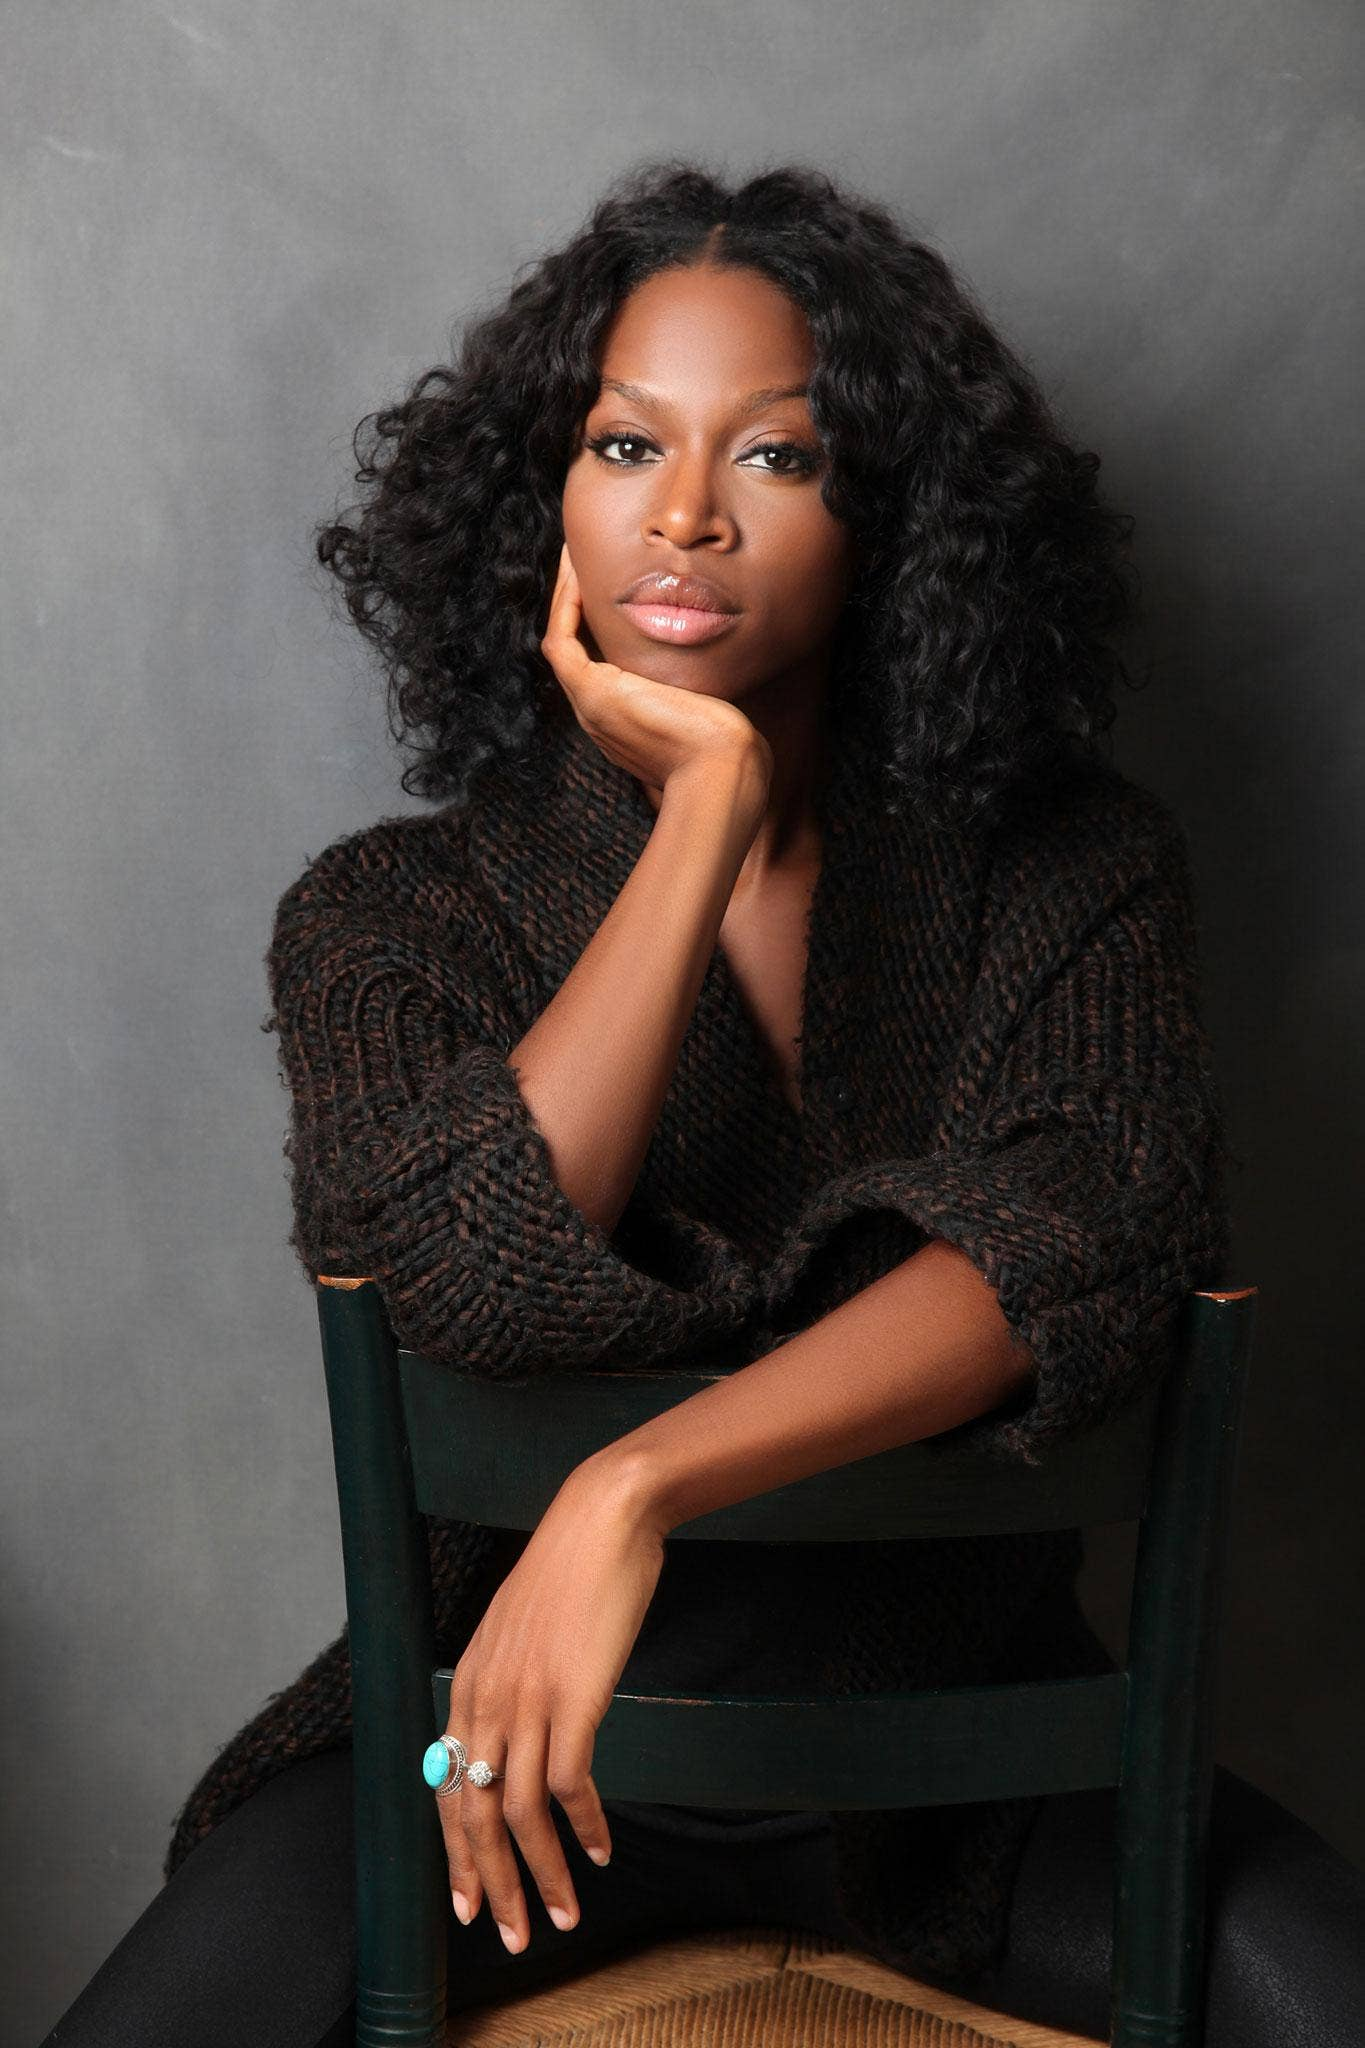 Superior linguistic turns: Taiye Selasi